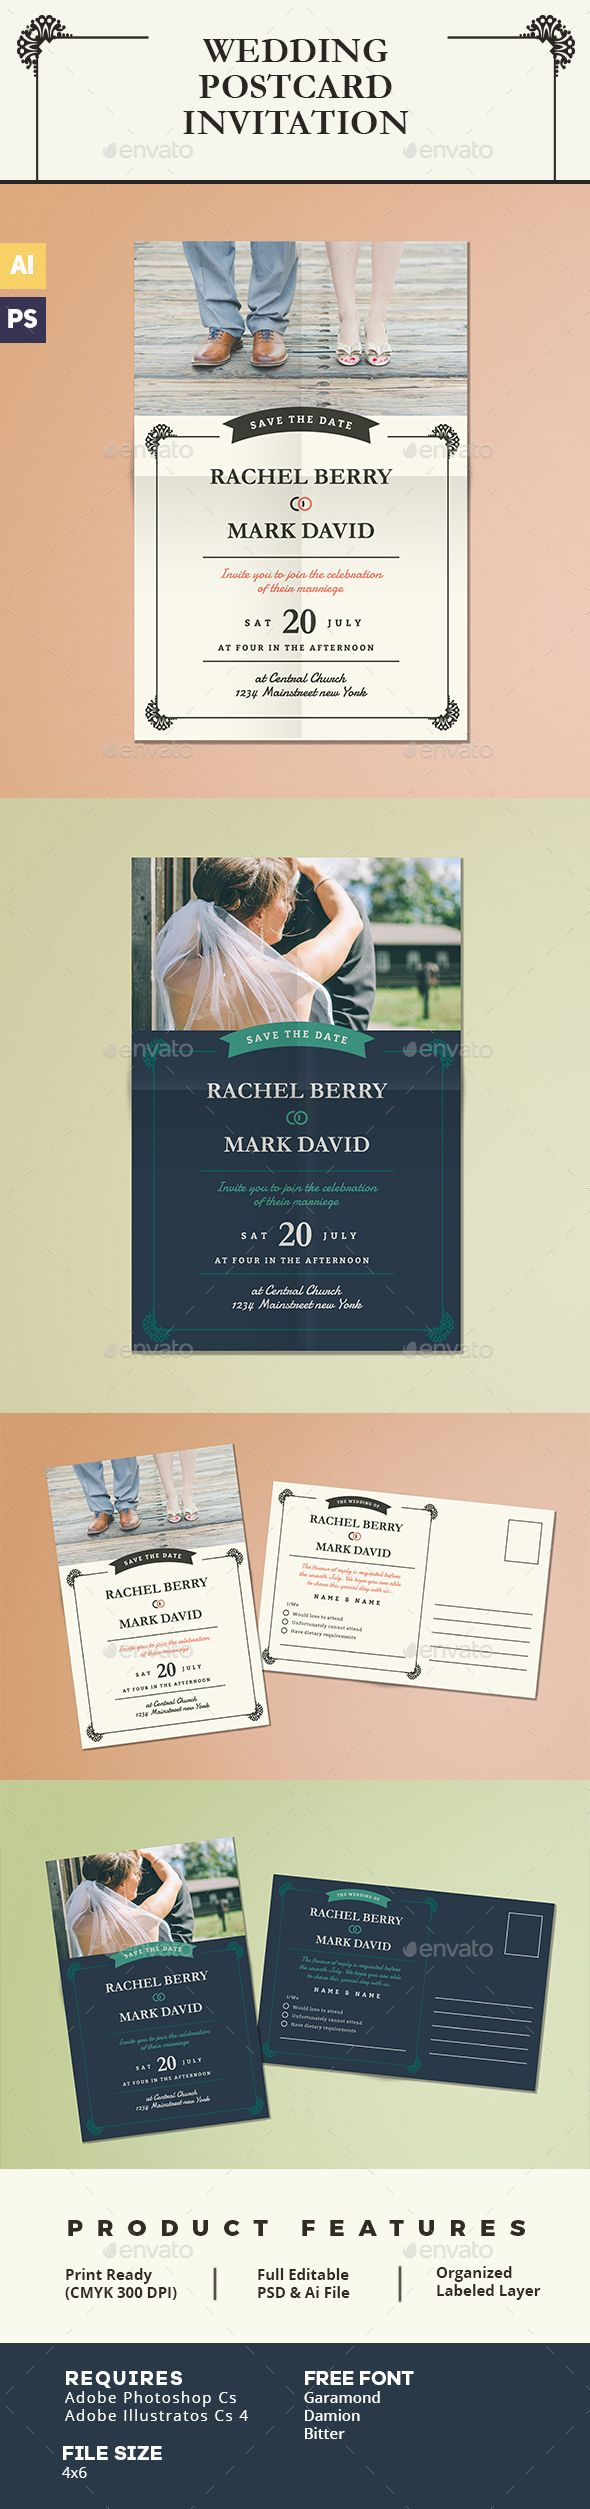 Elegant Wedding Invitation Postcard FEATURESSize 46 bleed